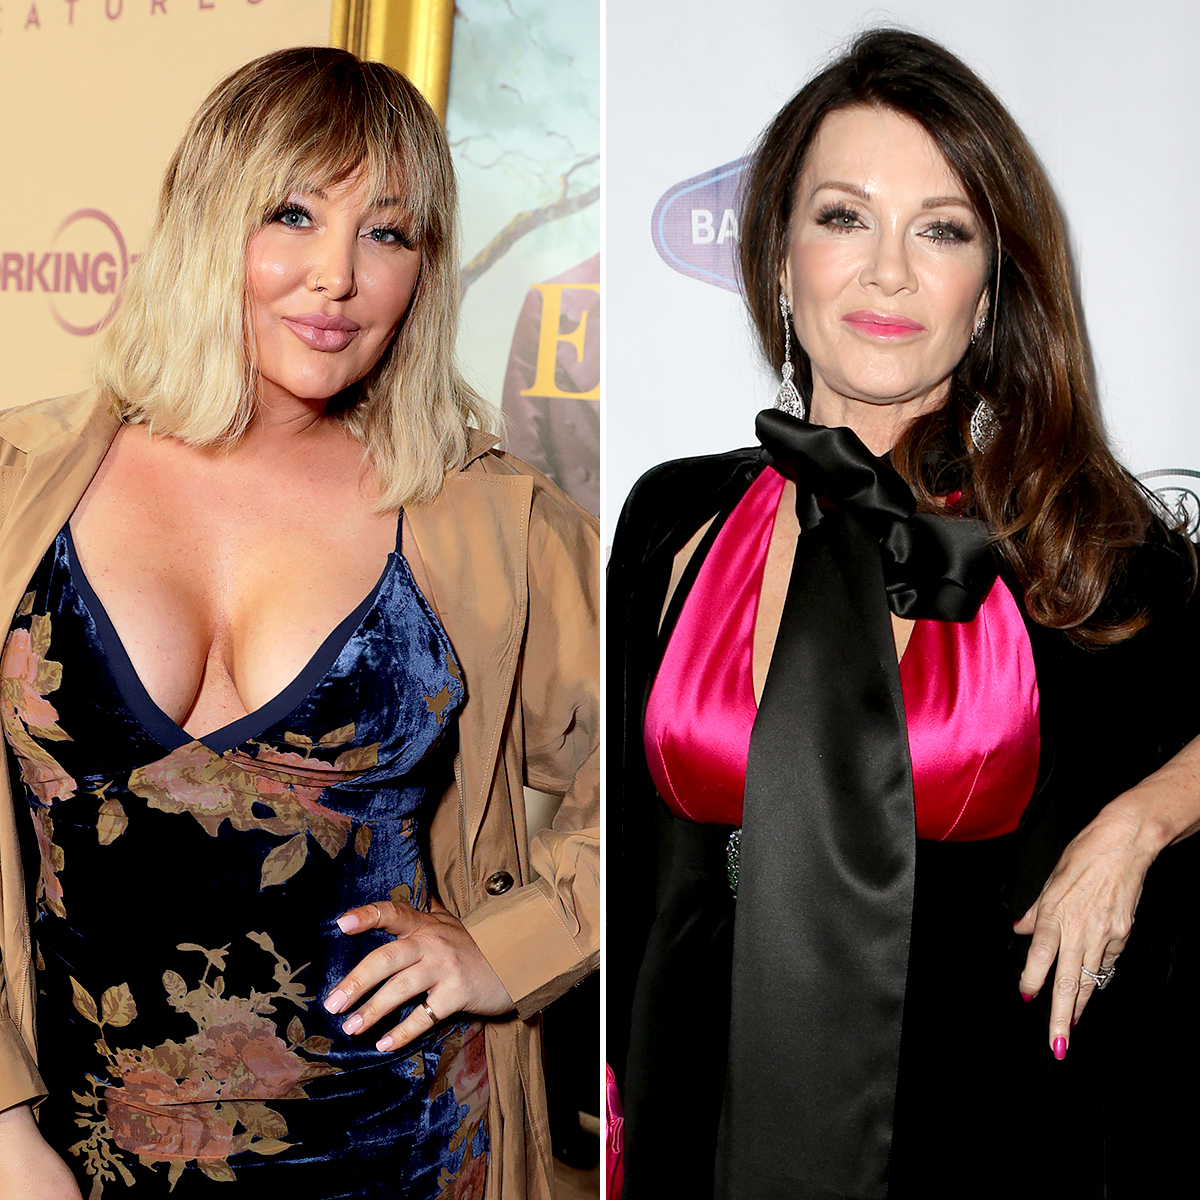 Billie Lee Claims She Was Silenced and Gaslighted by Lisa Vanderpump Before Being Fired From Pump Rules